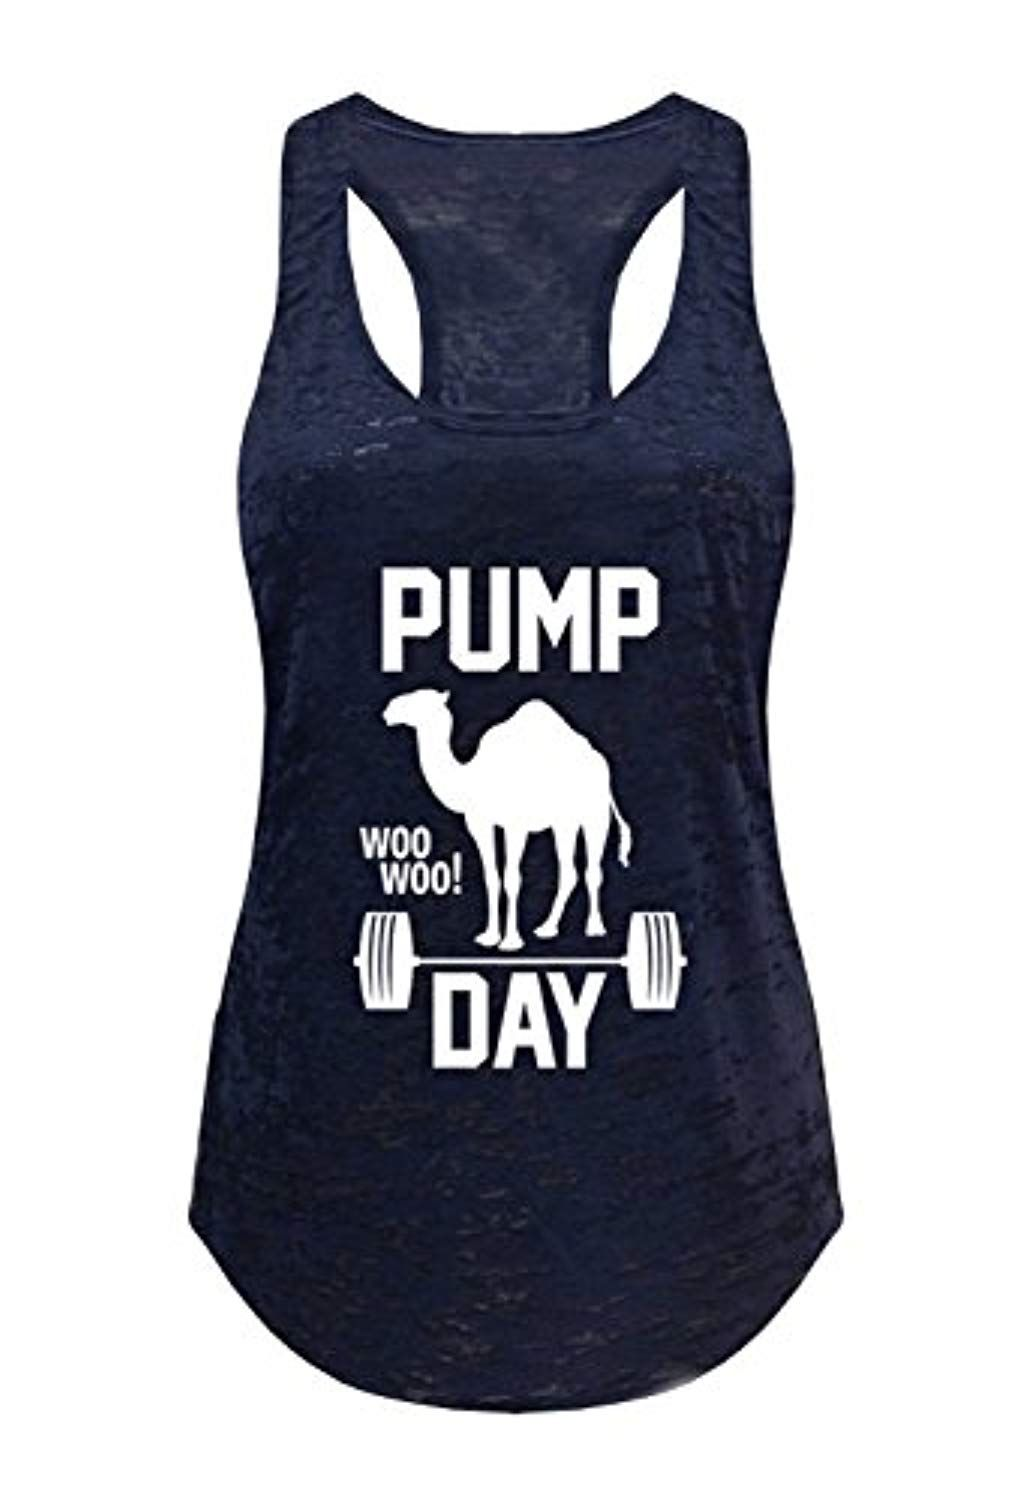 fc0d6a73 Tough Cookie's Women's Pump Day Gym Workout Burnout Tank Top ** Click image  to review more details. (This is an affiliate link) #womentanks